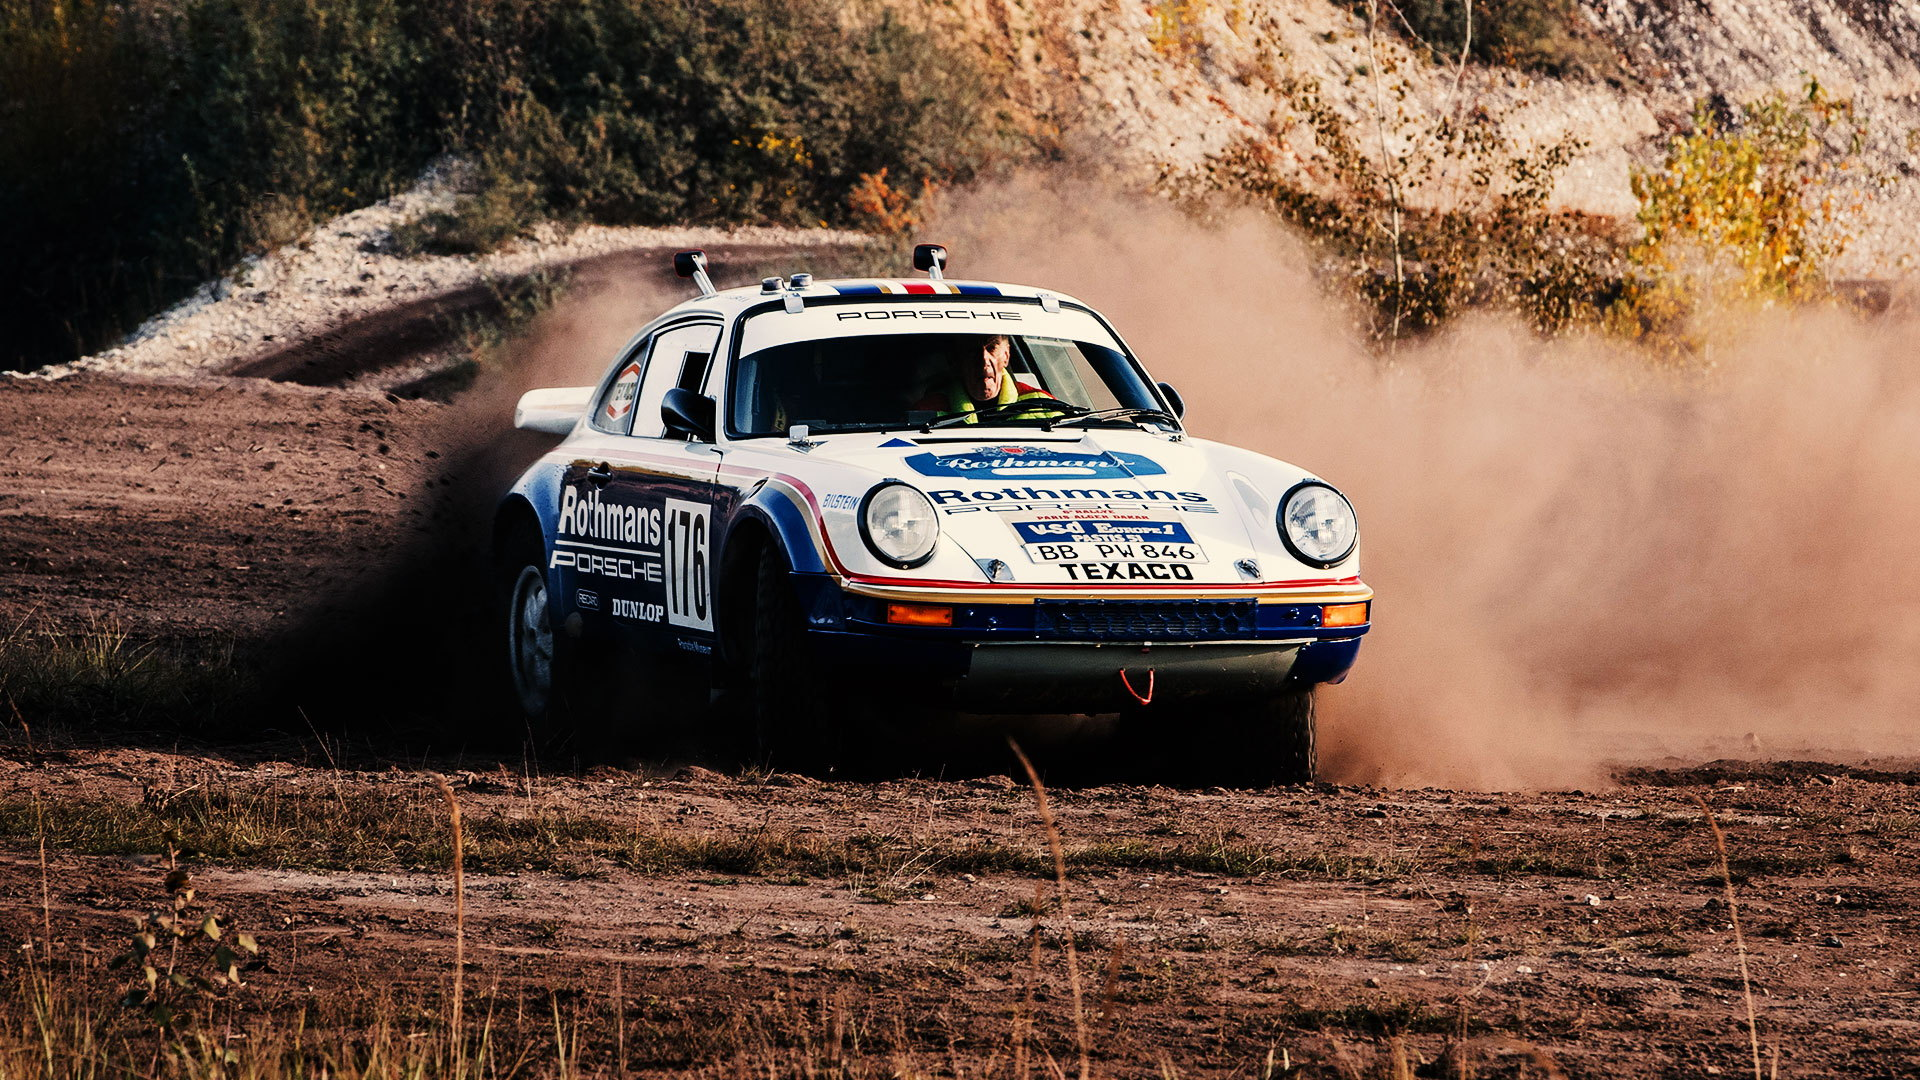 Top 5 Porsche rally cars